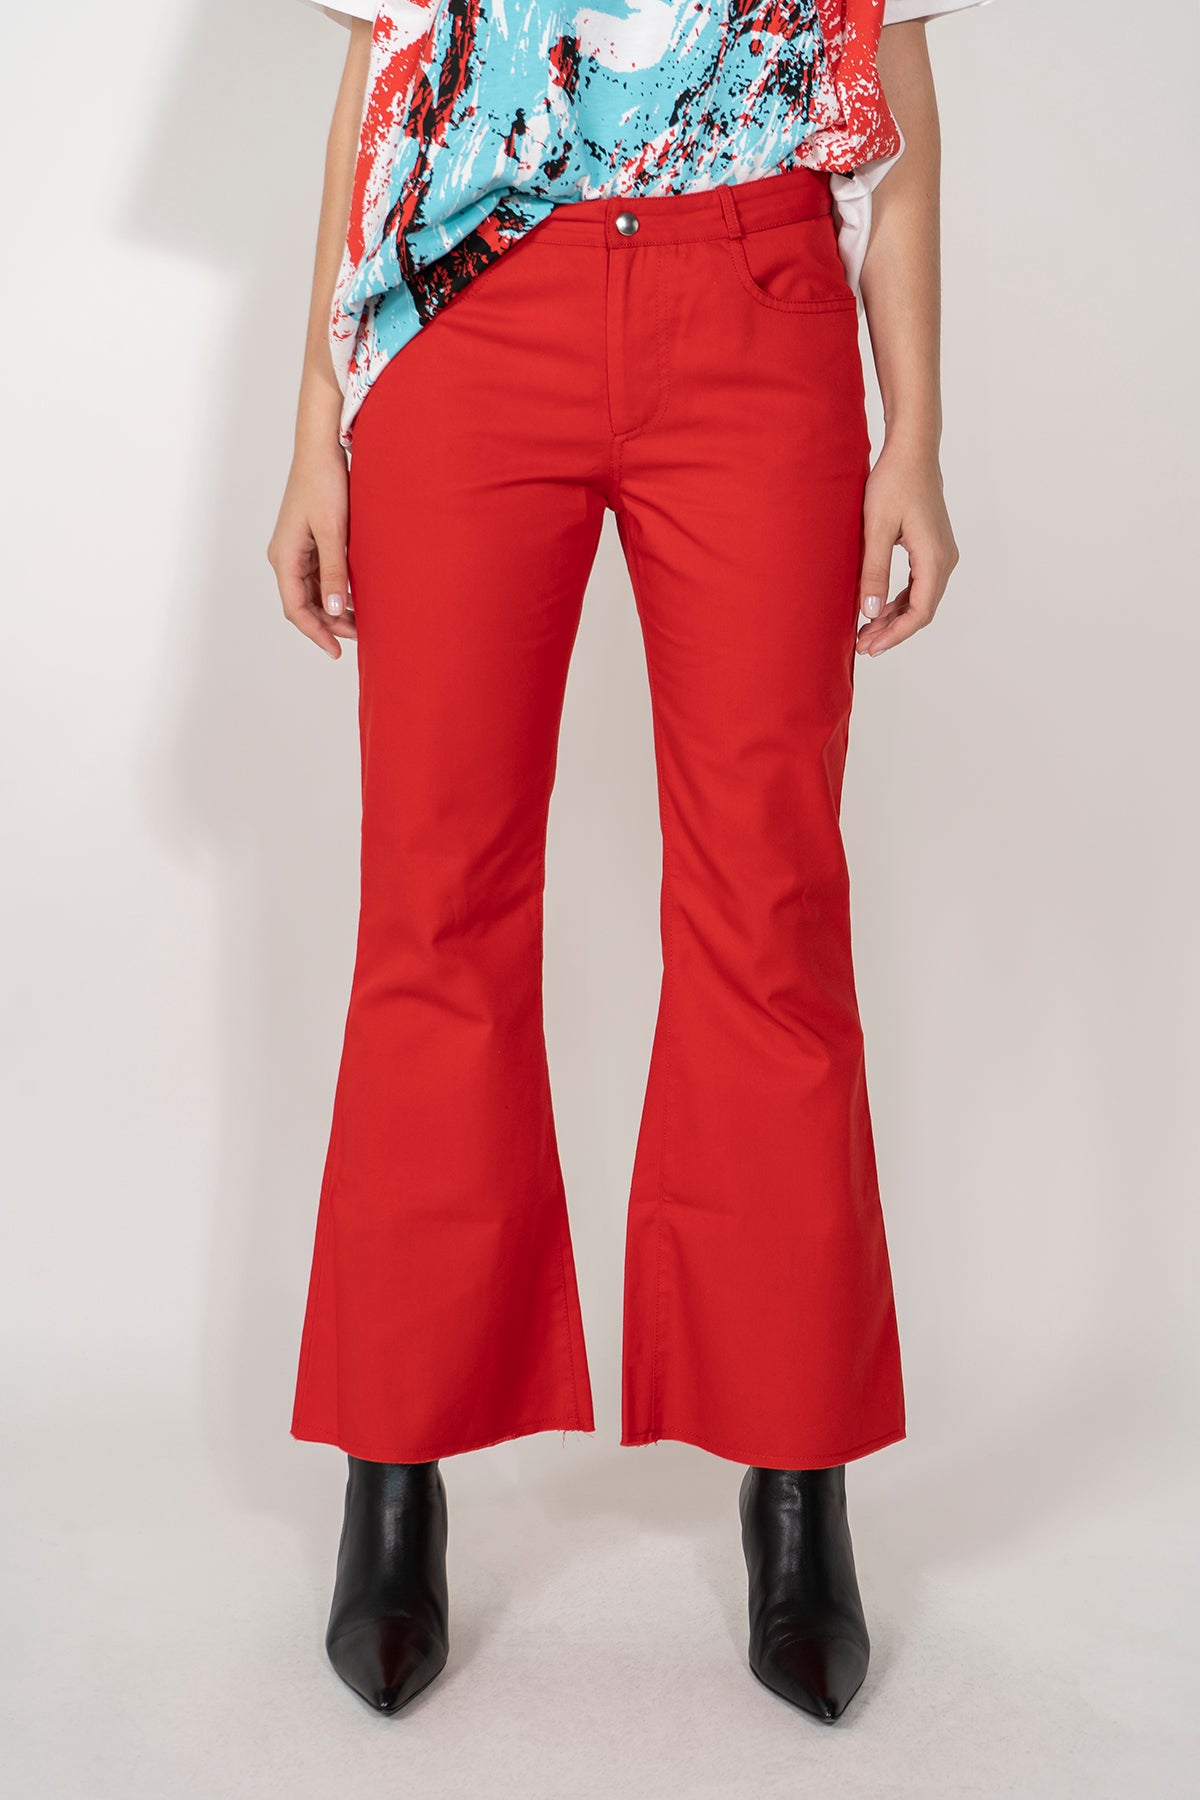 PRE-OWNED / RED CLASSIC FLARED CAPRIS MARQUES ALMEIDA